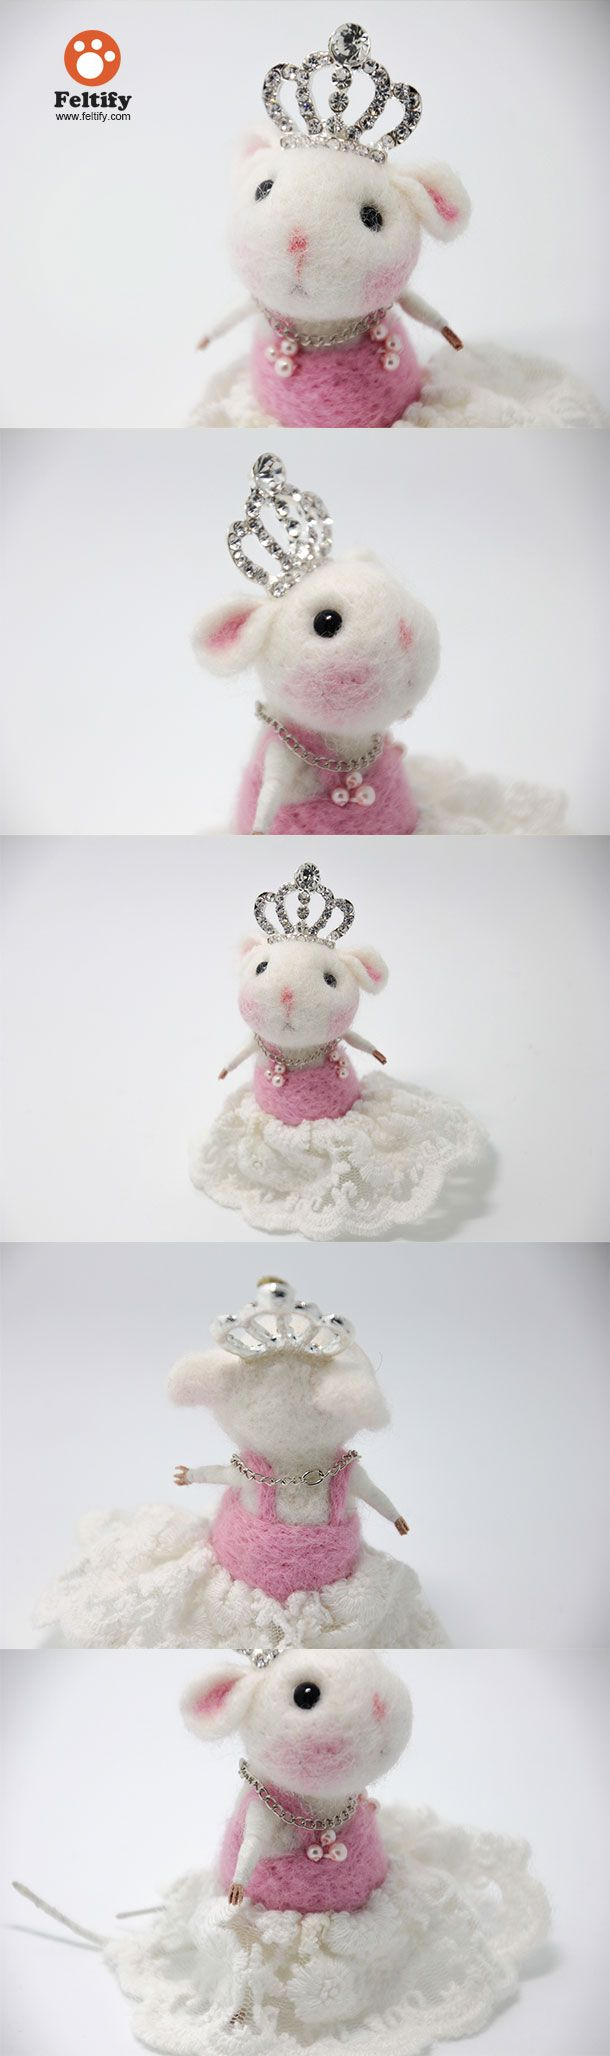 Needle Felted Felting Animals Cute Mice Mouse Princess